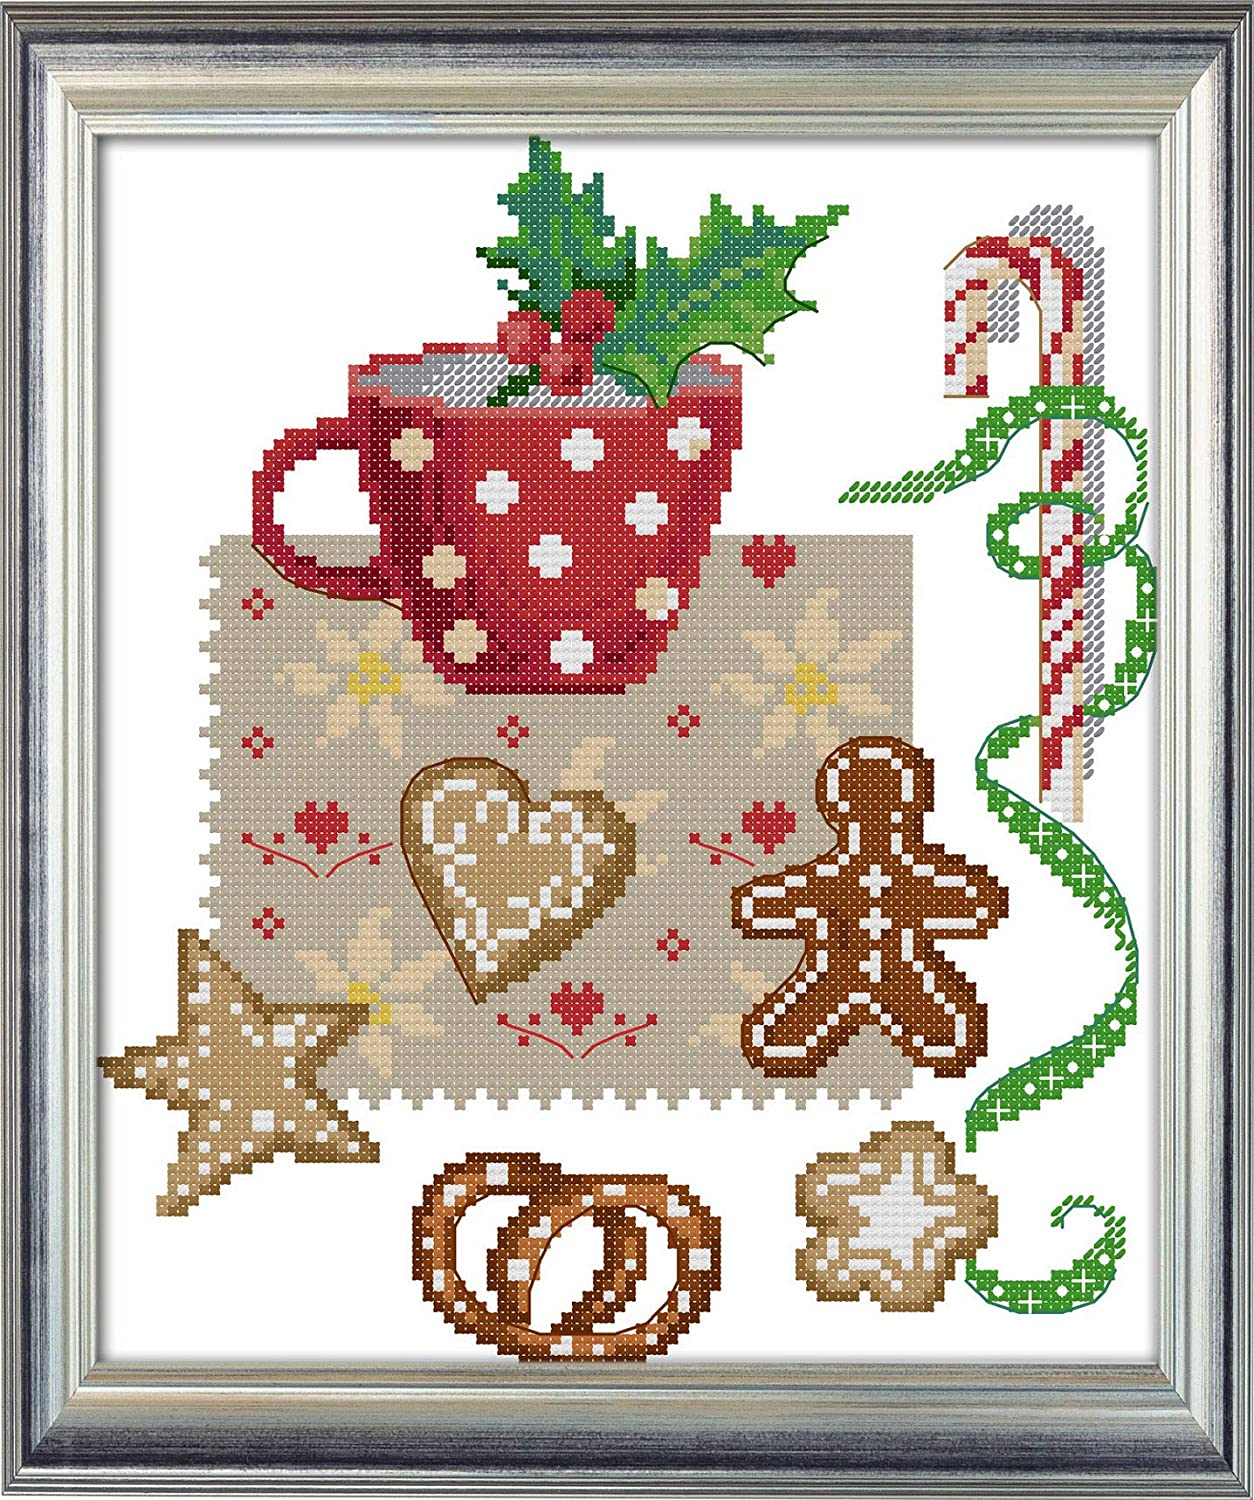 Joy Purchase Sunday Cross Stitch Kits Afternoon Te gift Christmas 14CT Stamped